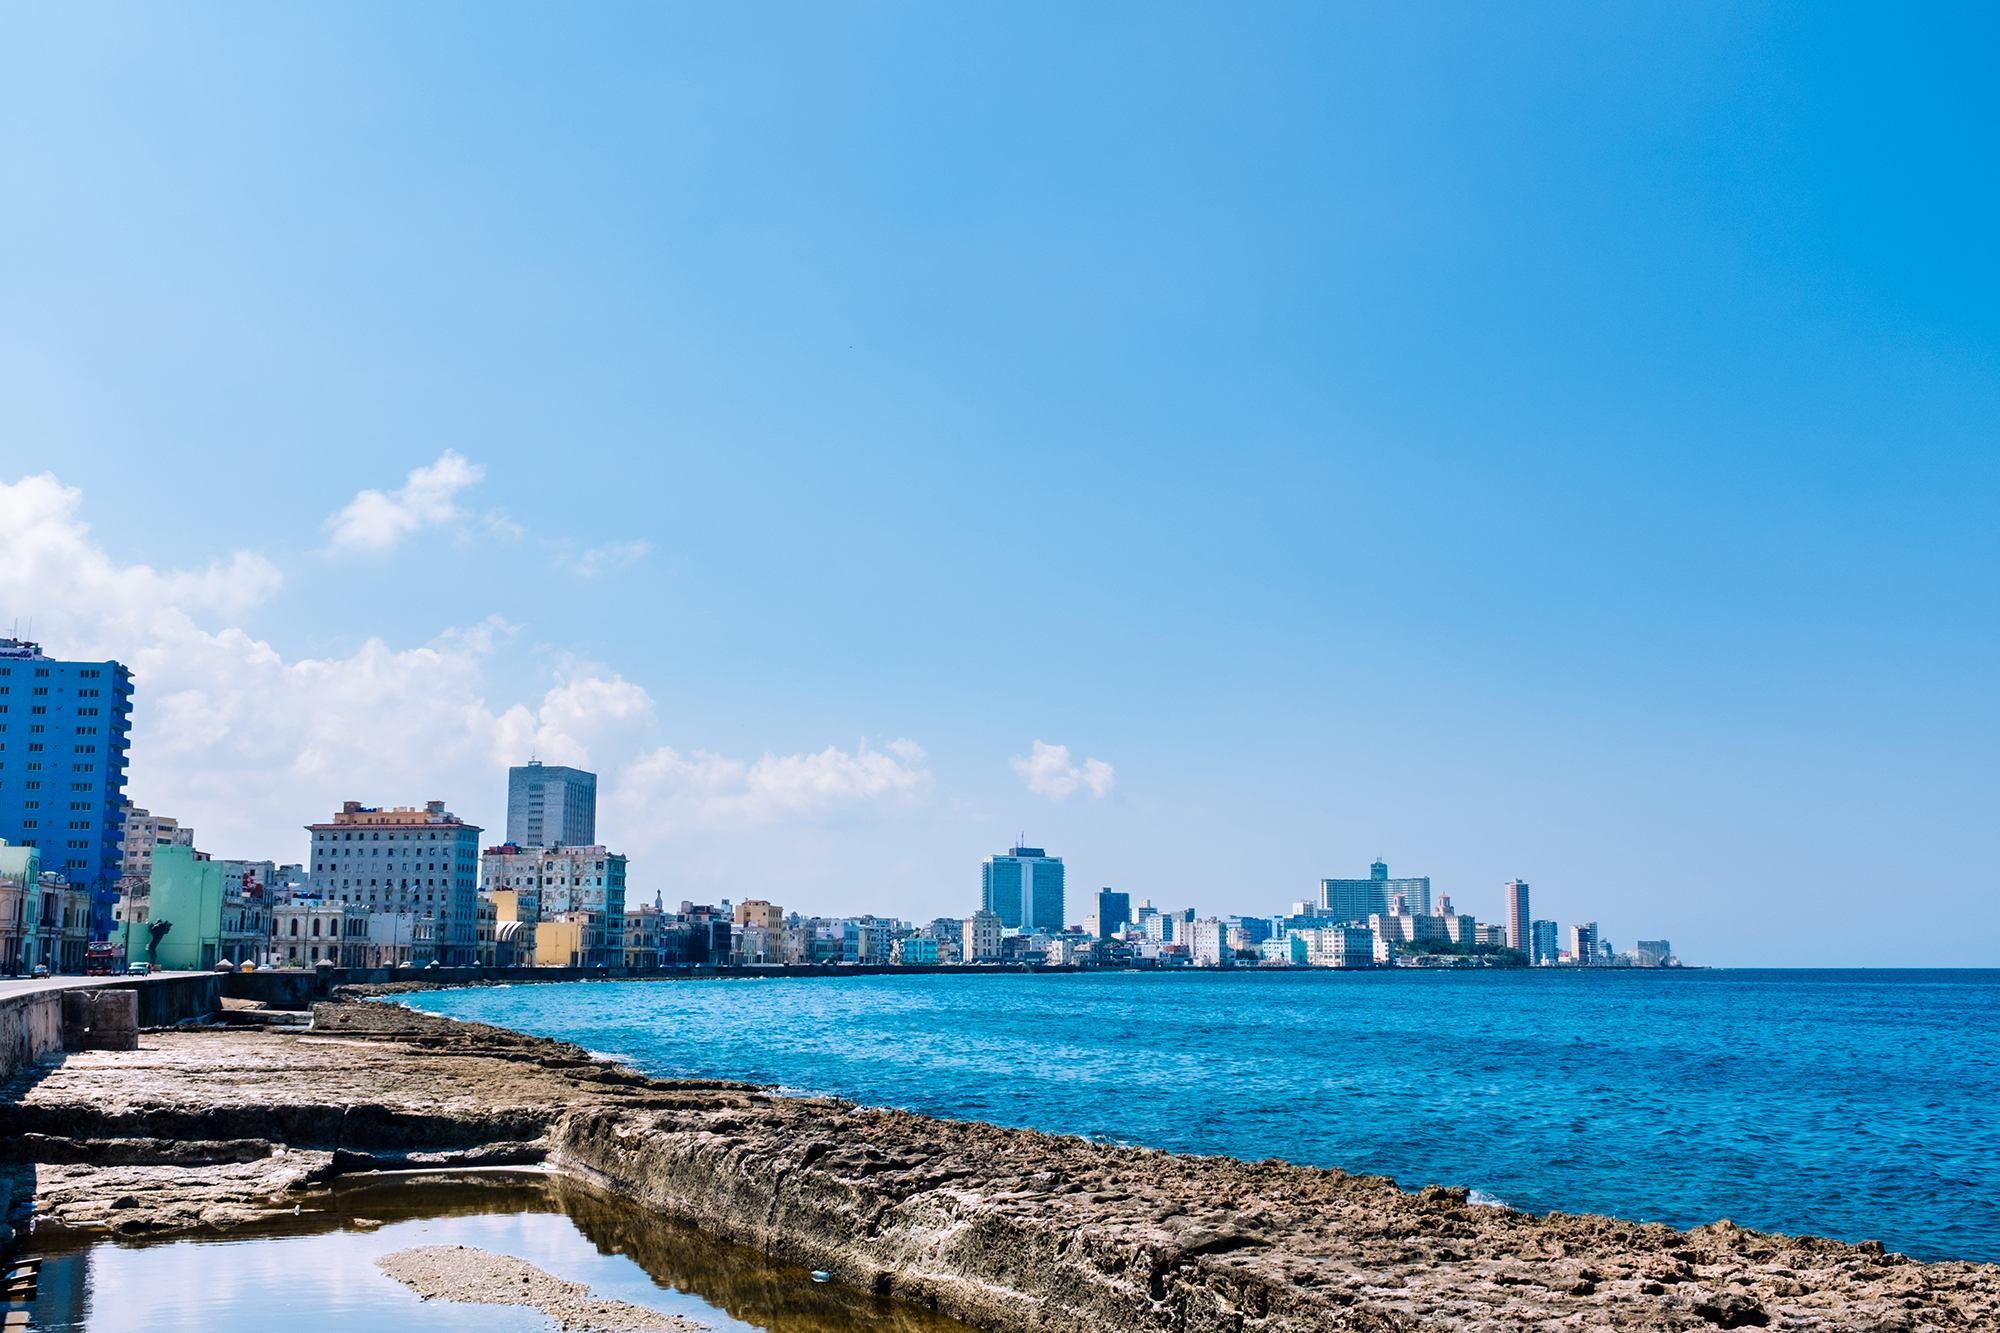 Panorama view of the broad esplanade of El Malecon in Havana